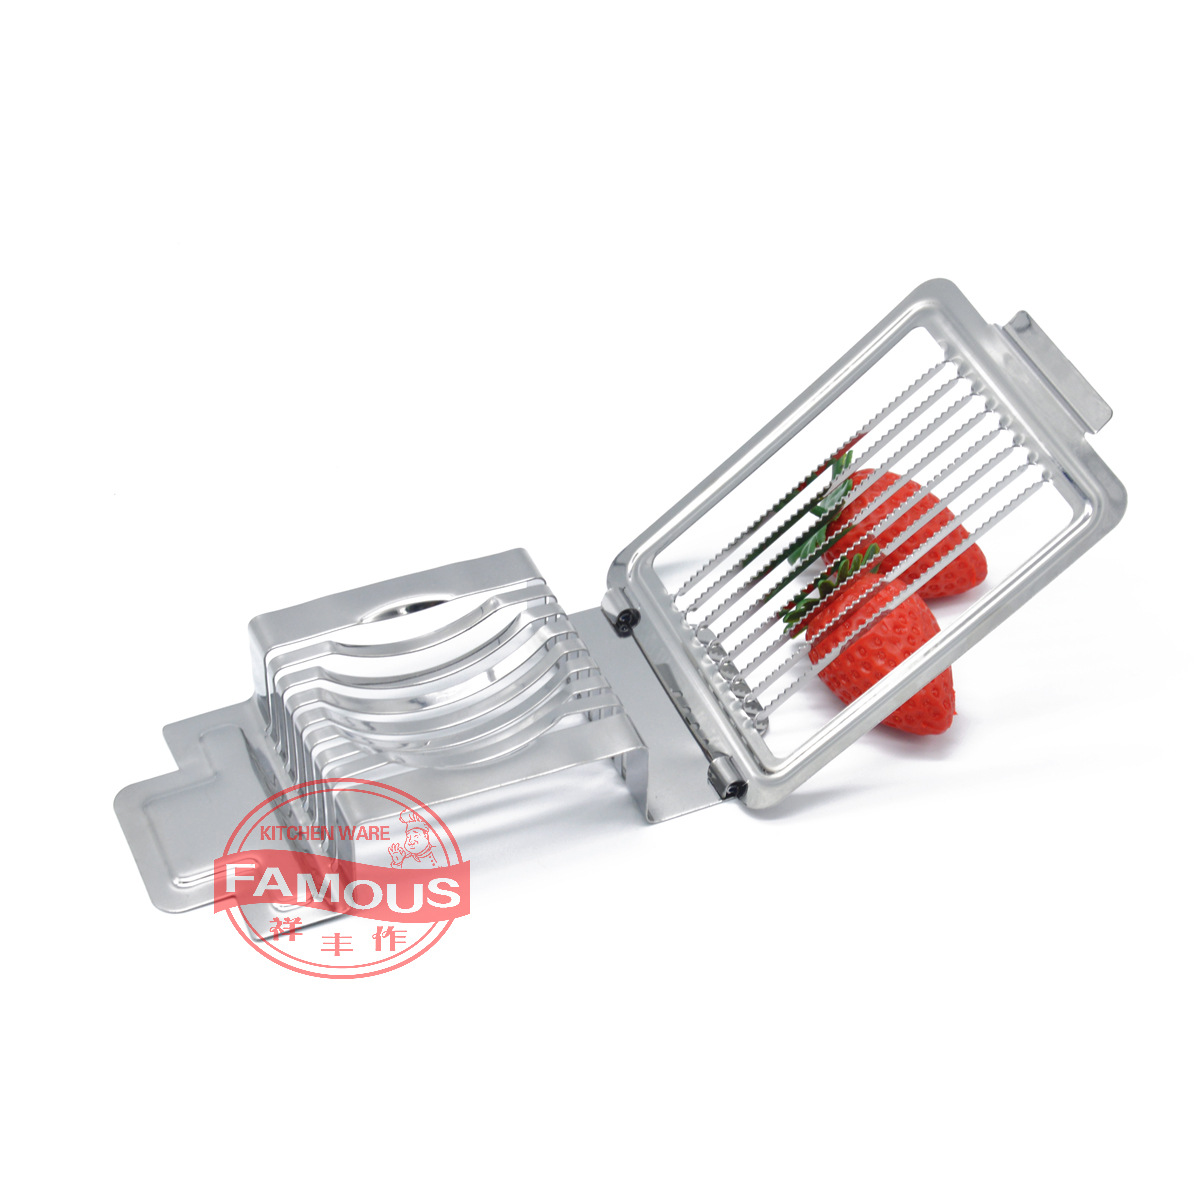 Kitchen Multi-functional Stainless Steel Slicer Multi-function Slicing Machine Fruit Cutter Strawberry Dividers Cutter